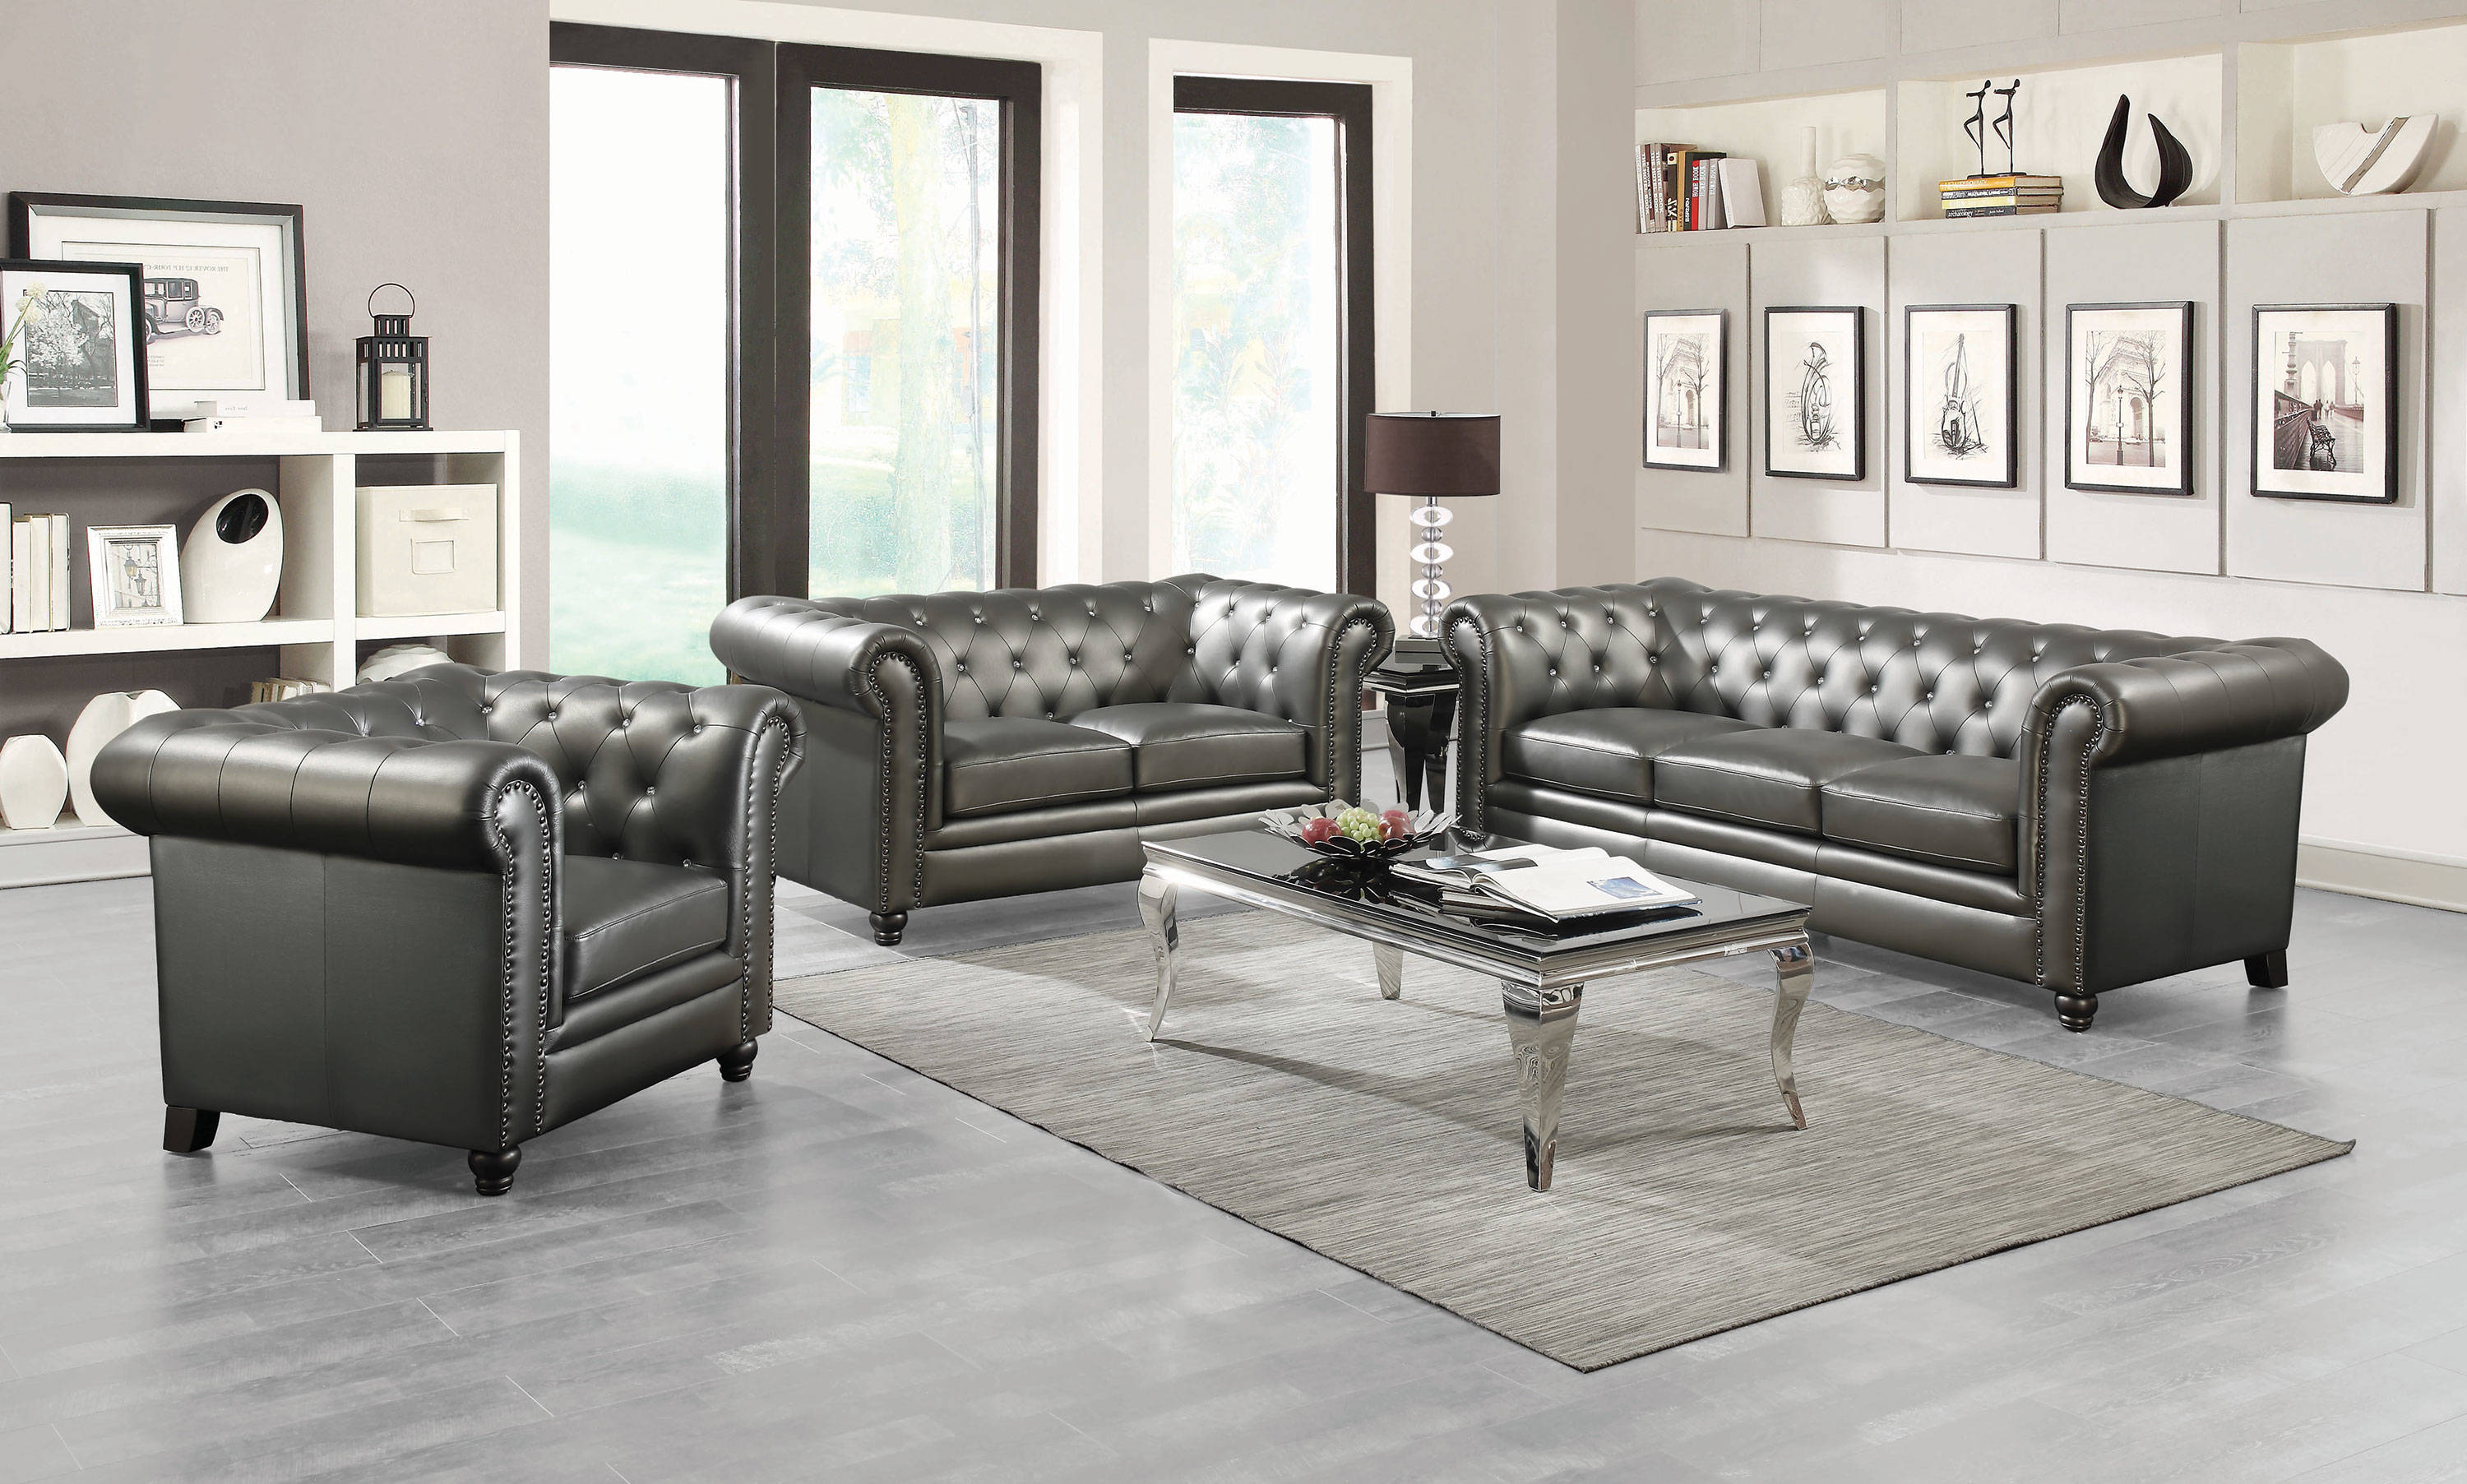 Coaster Furniture Roy 3pc Living Room Set The Classy Home